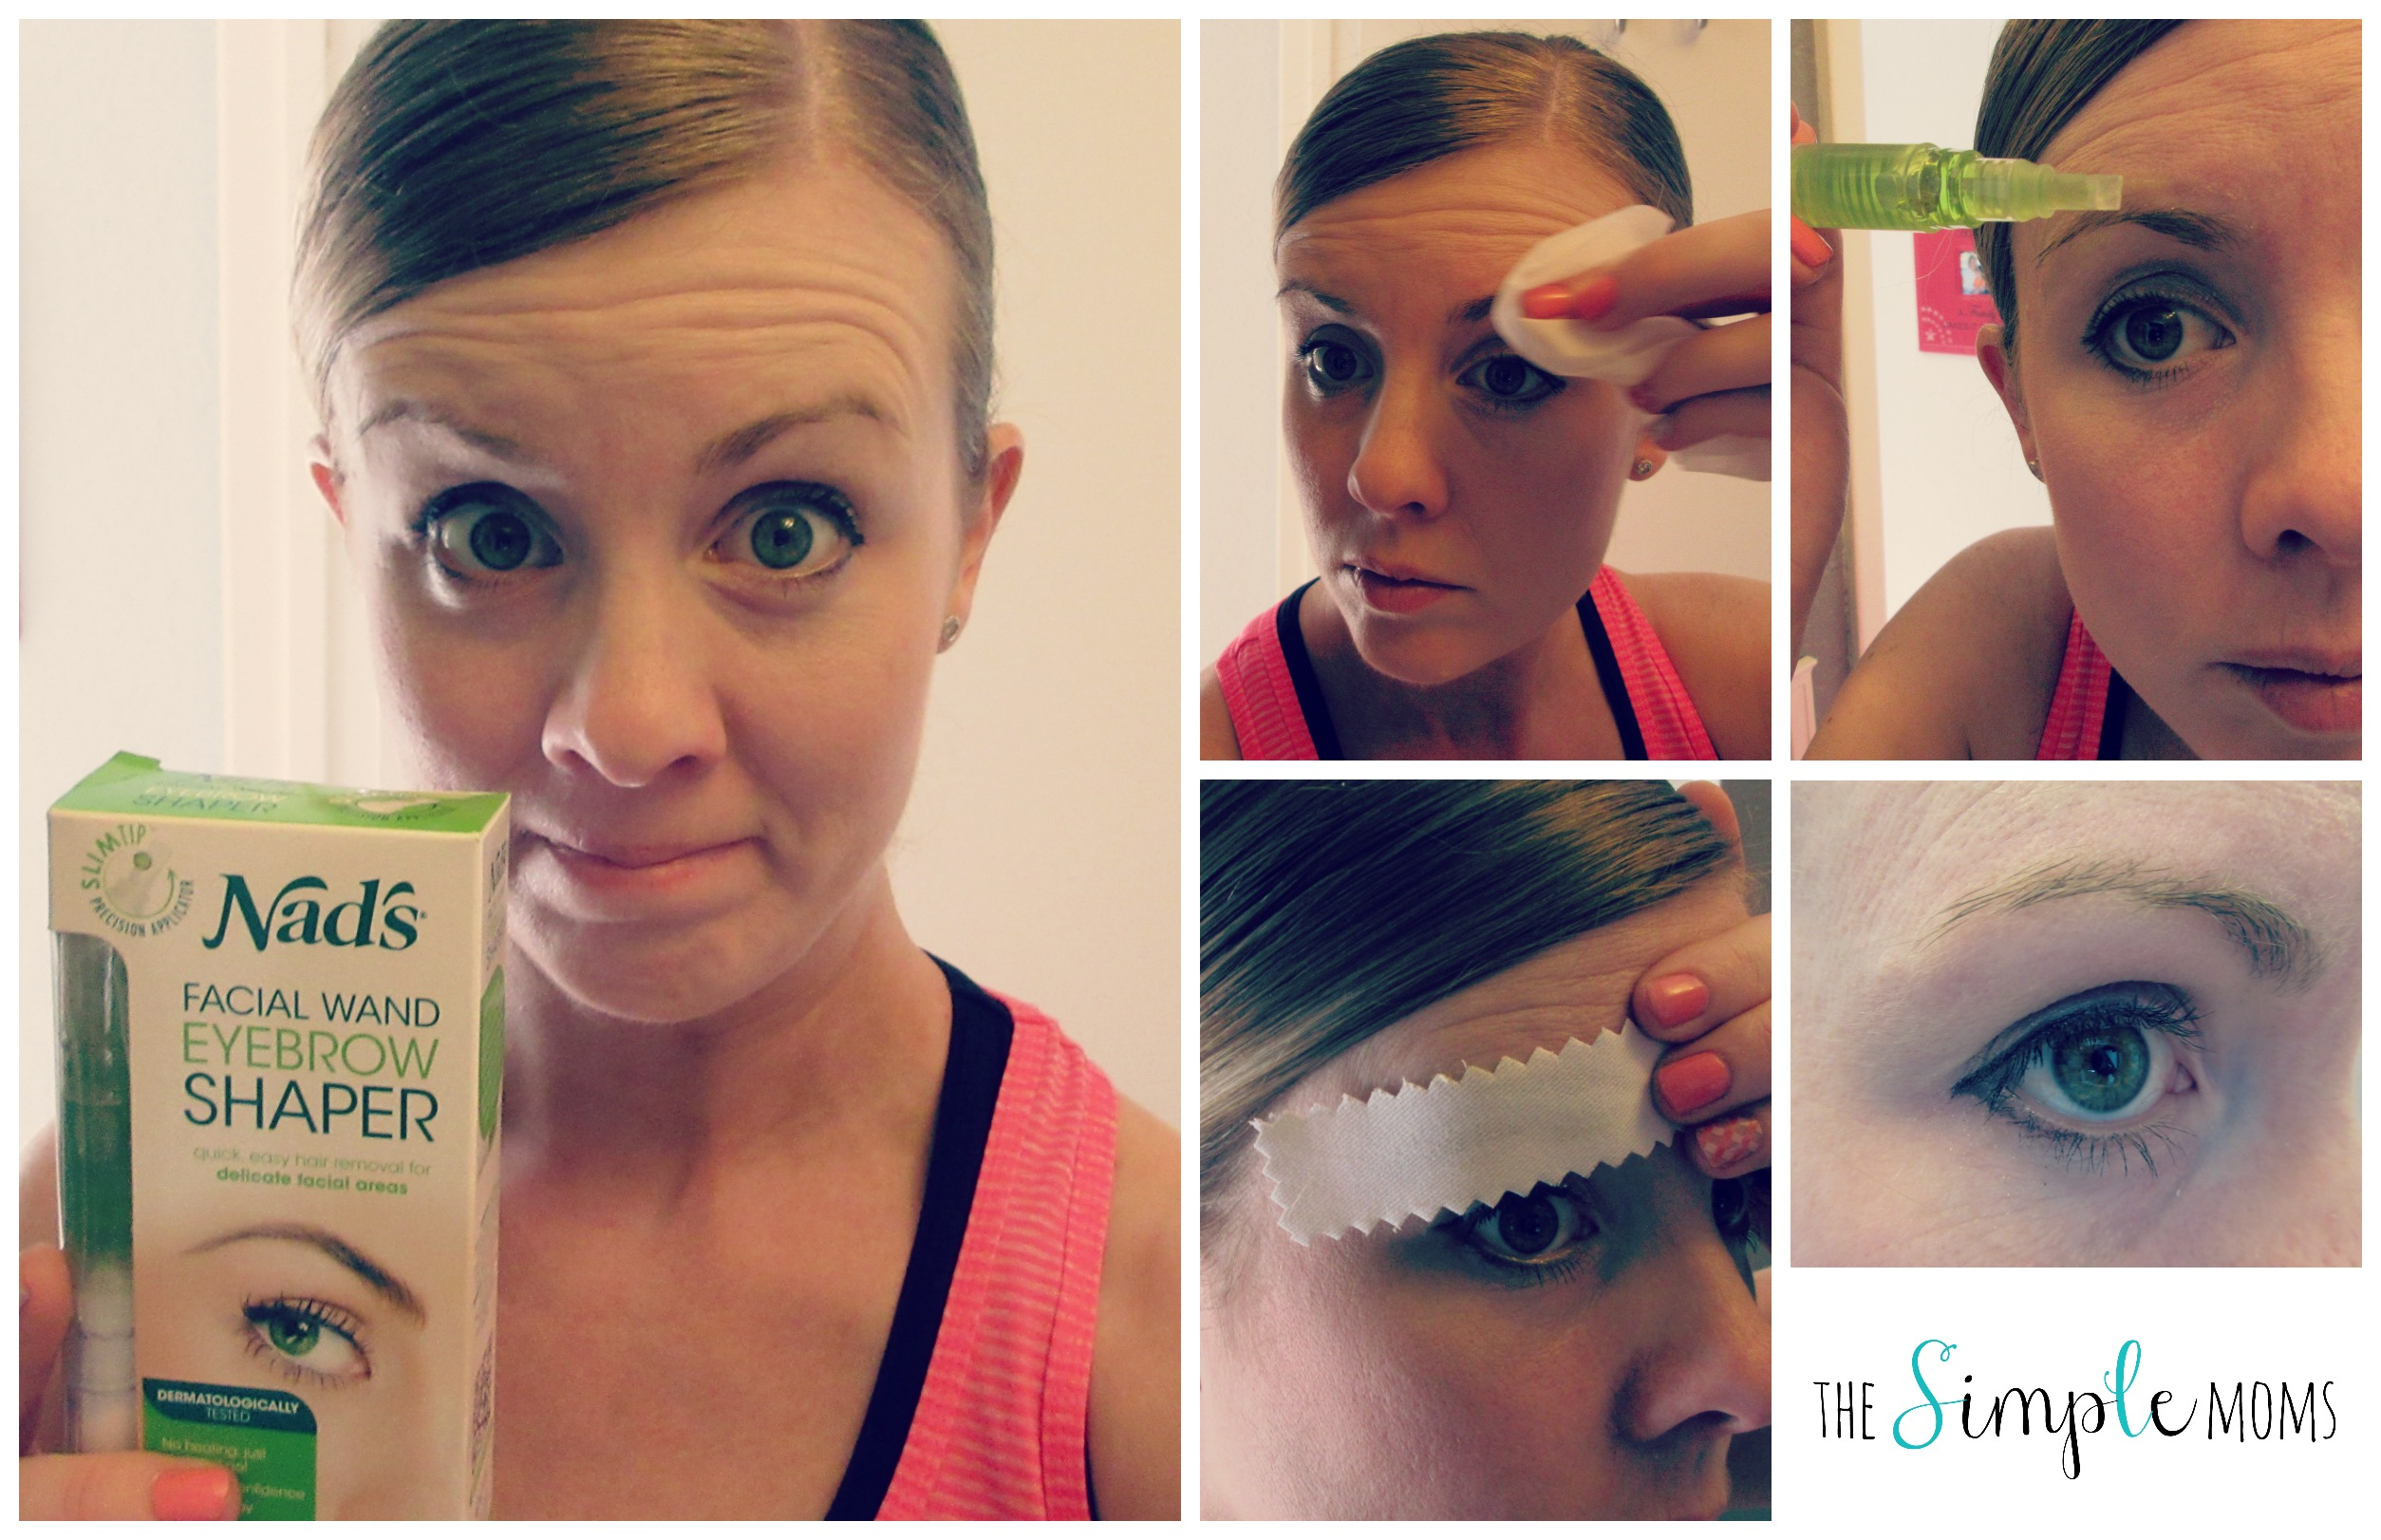 Nads Facial Wand Eyebrow Shaper Review Giveaway The